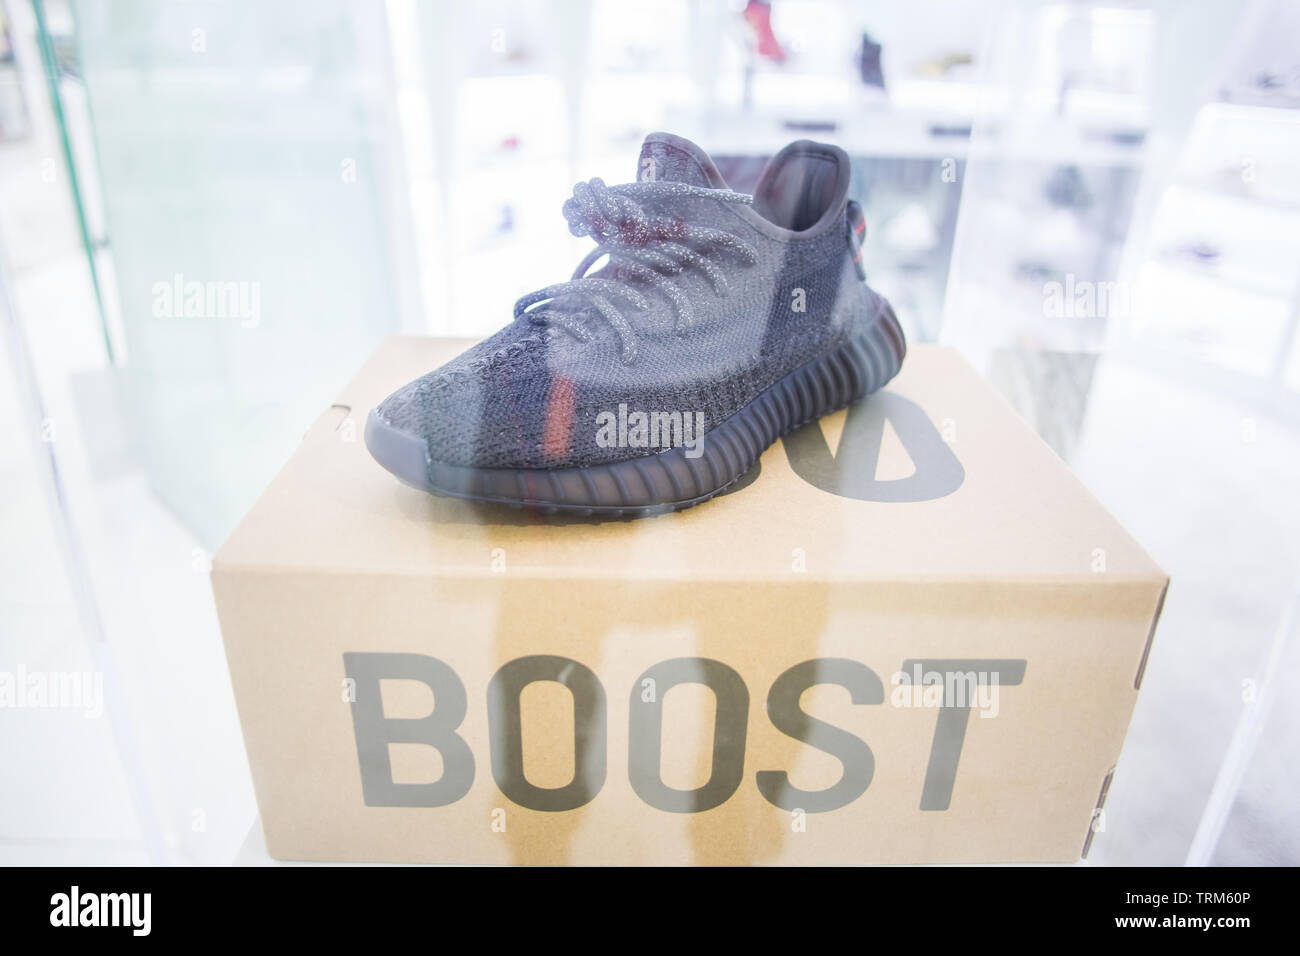 release-of-adidas-yeezy-boost-350v2-blac